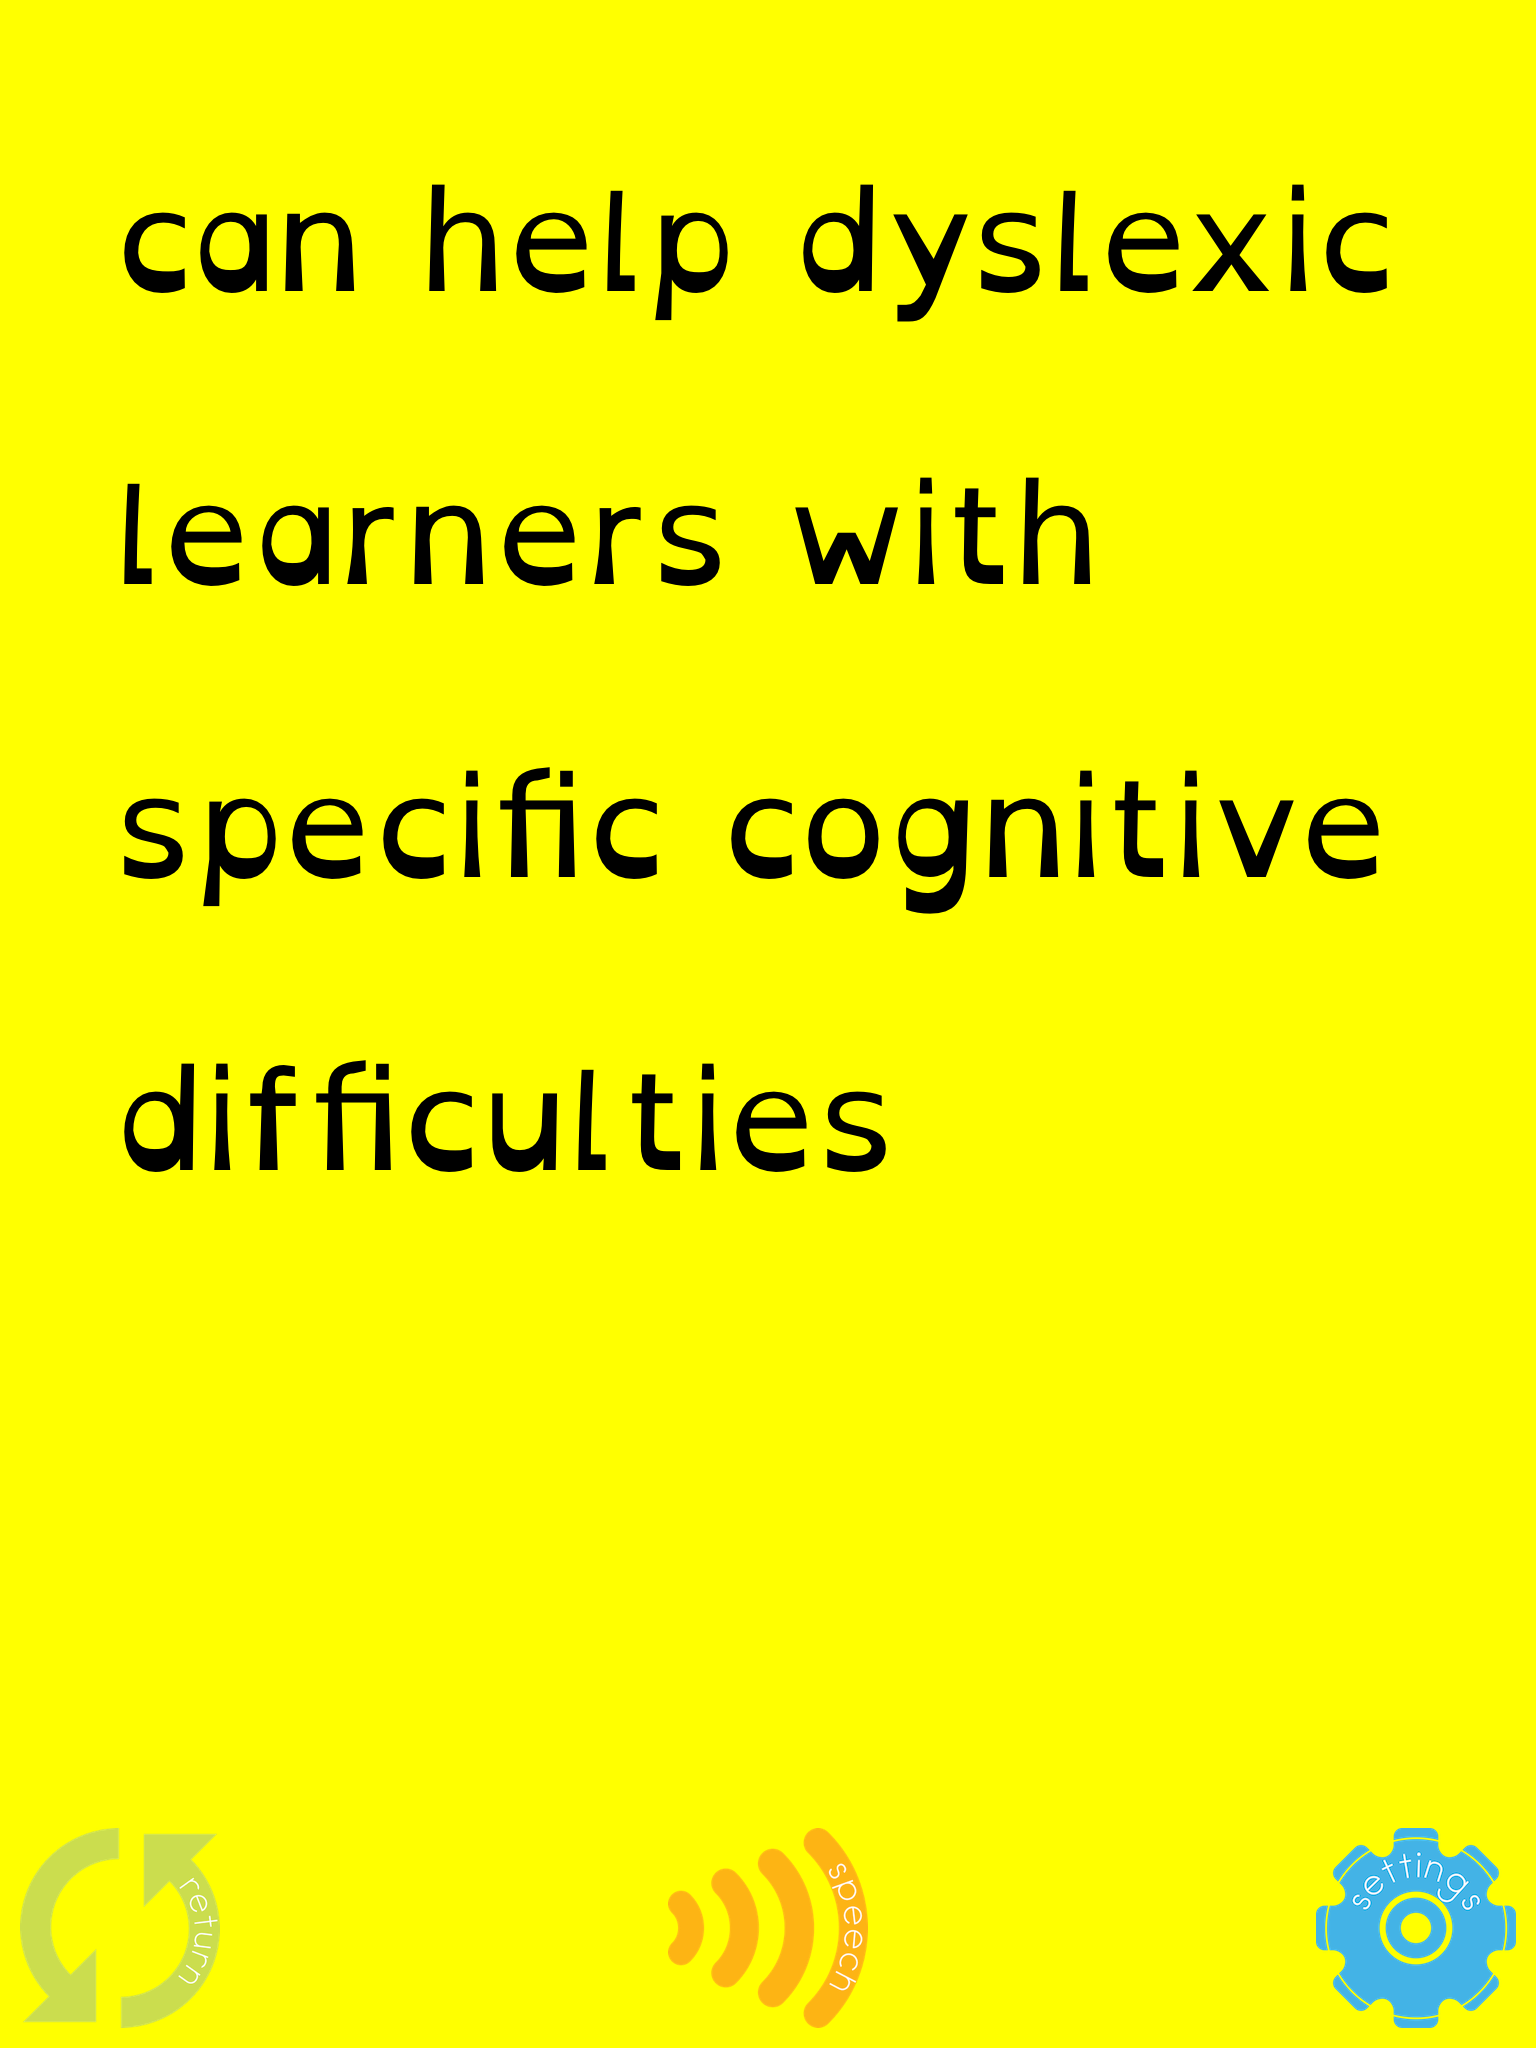 Can help dyslexic learners with specific cognitive difficulties